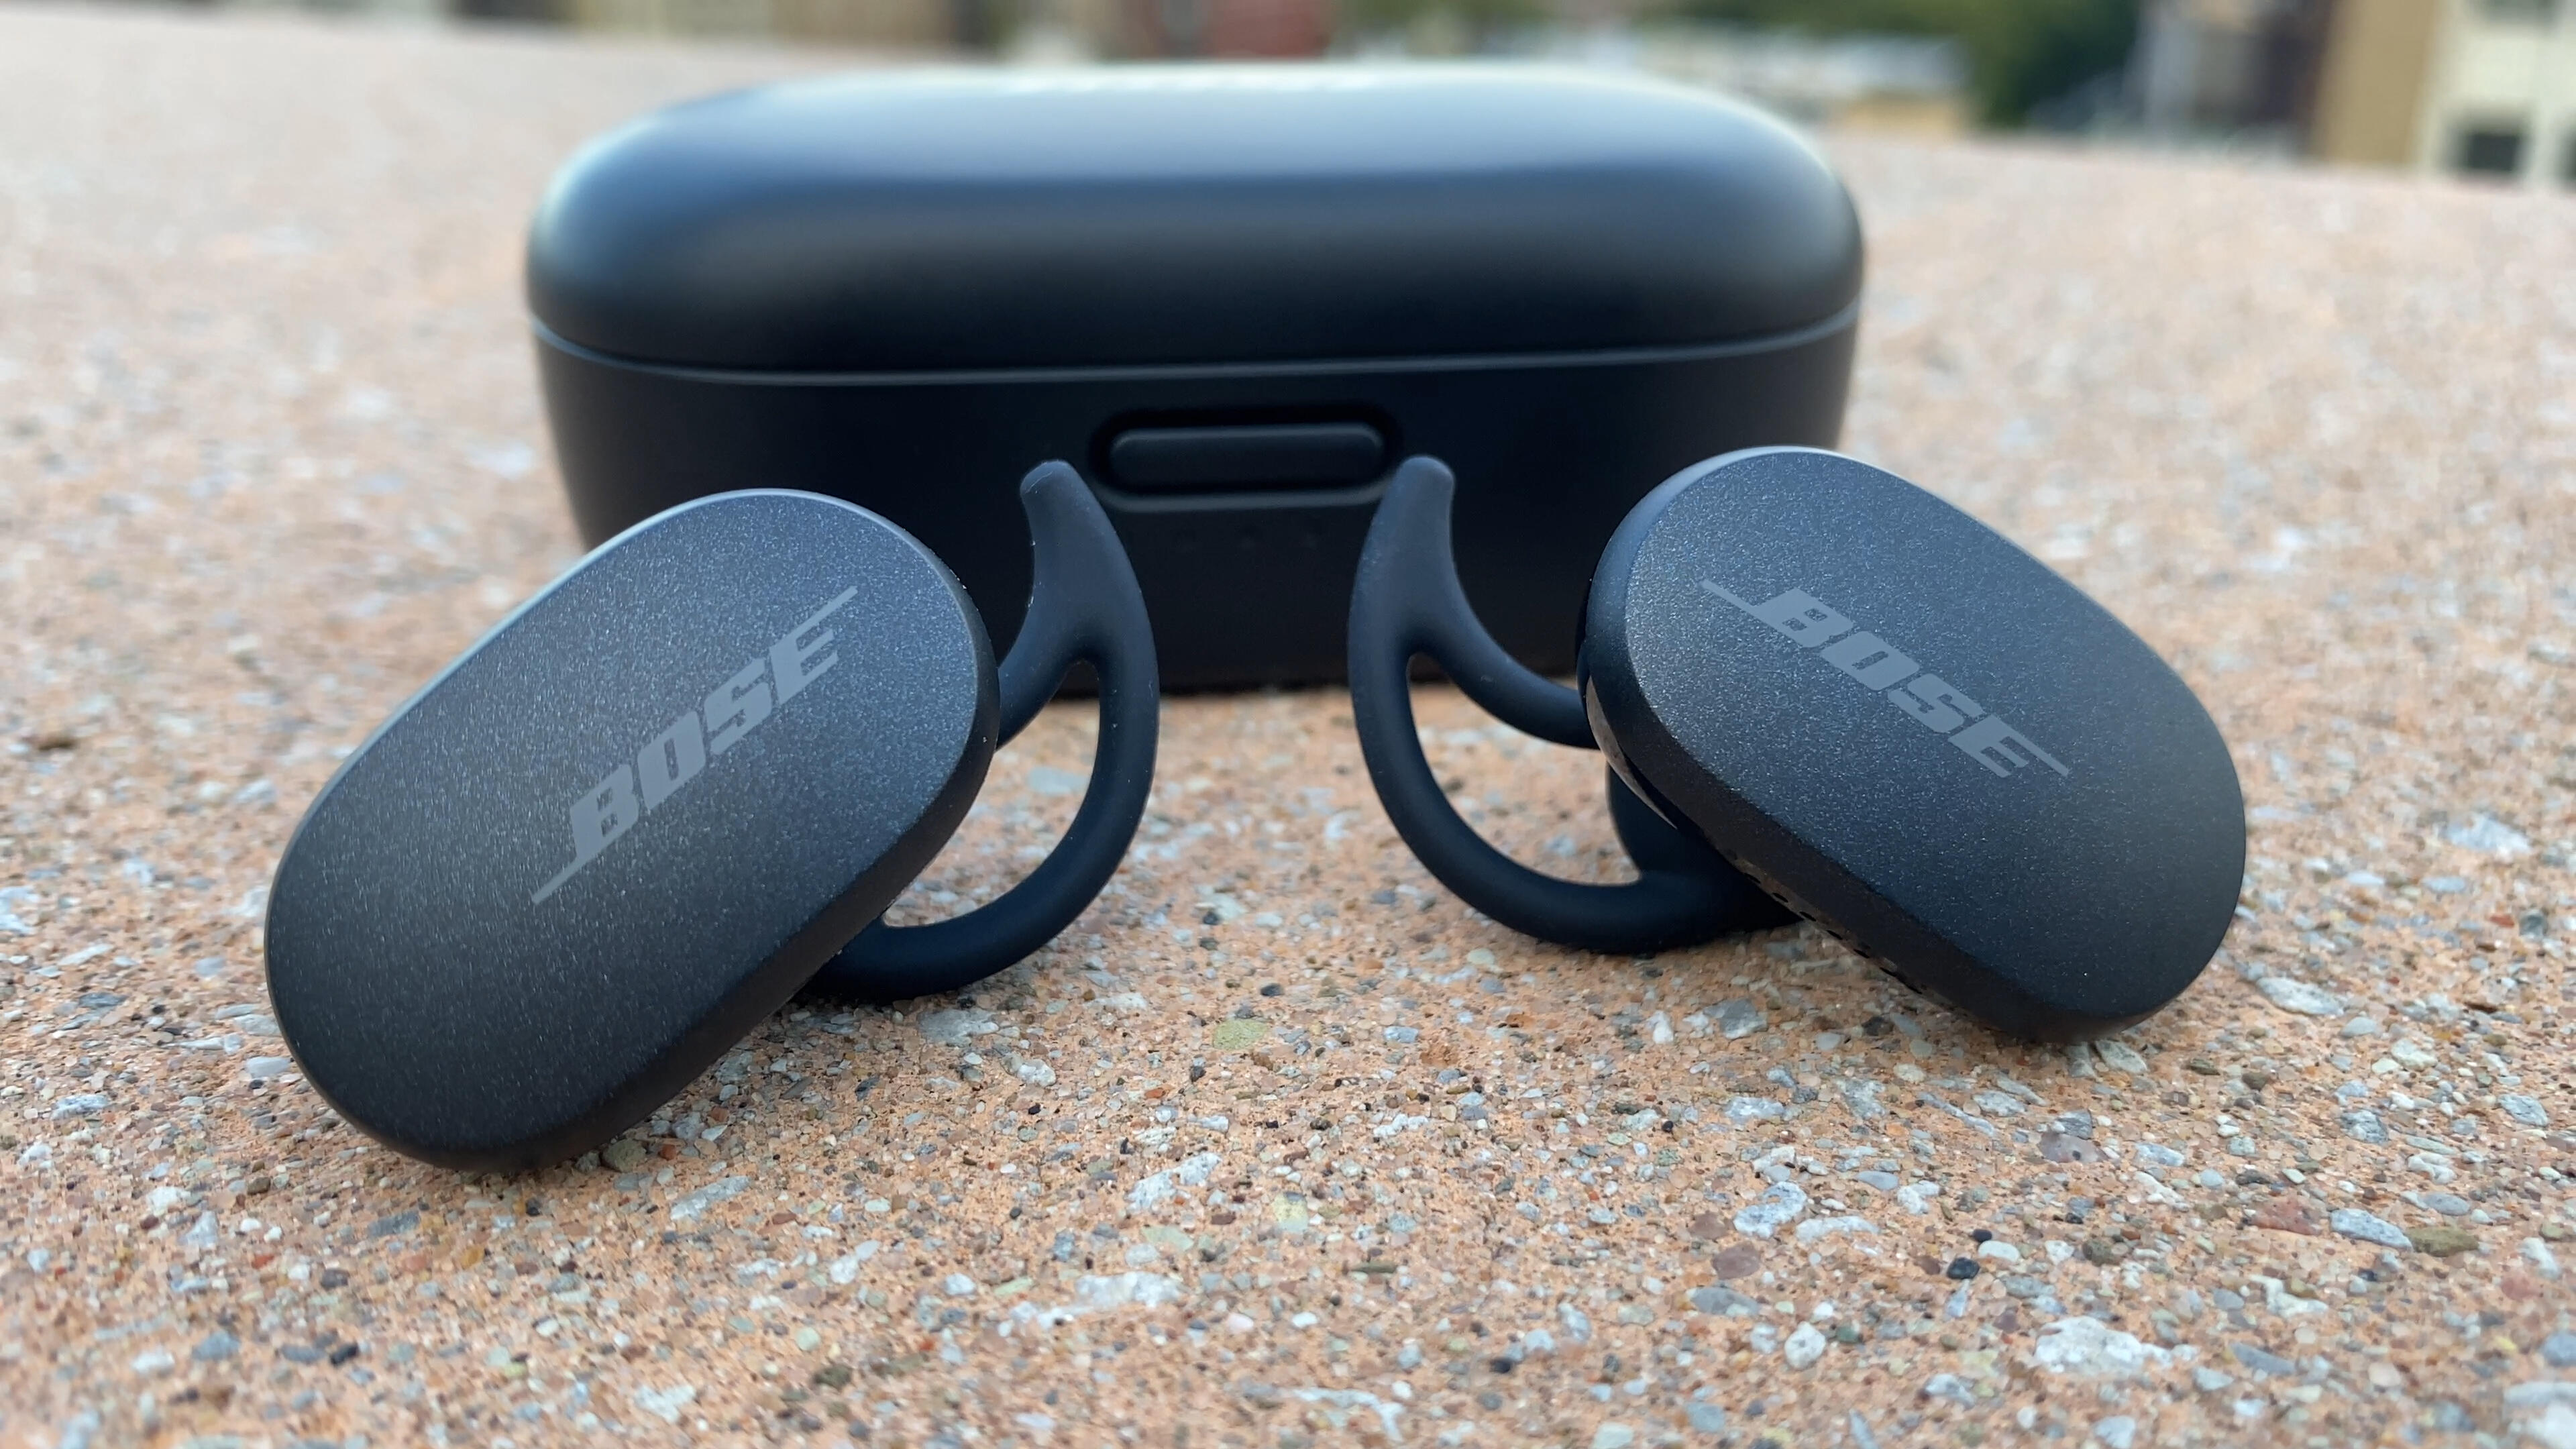 Video: Bose QuietComfort Earbuds: Best noise canceling